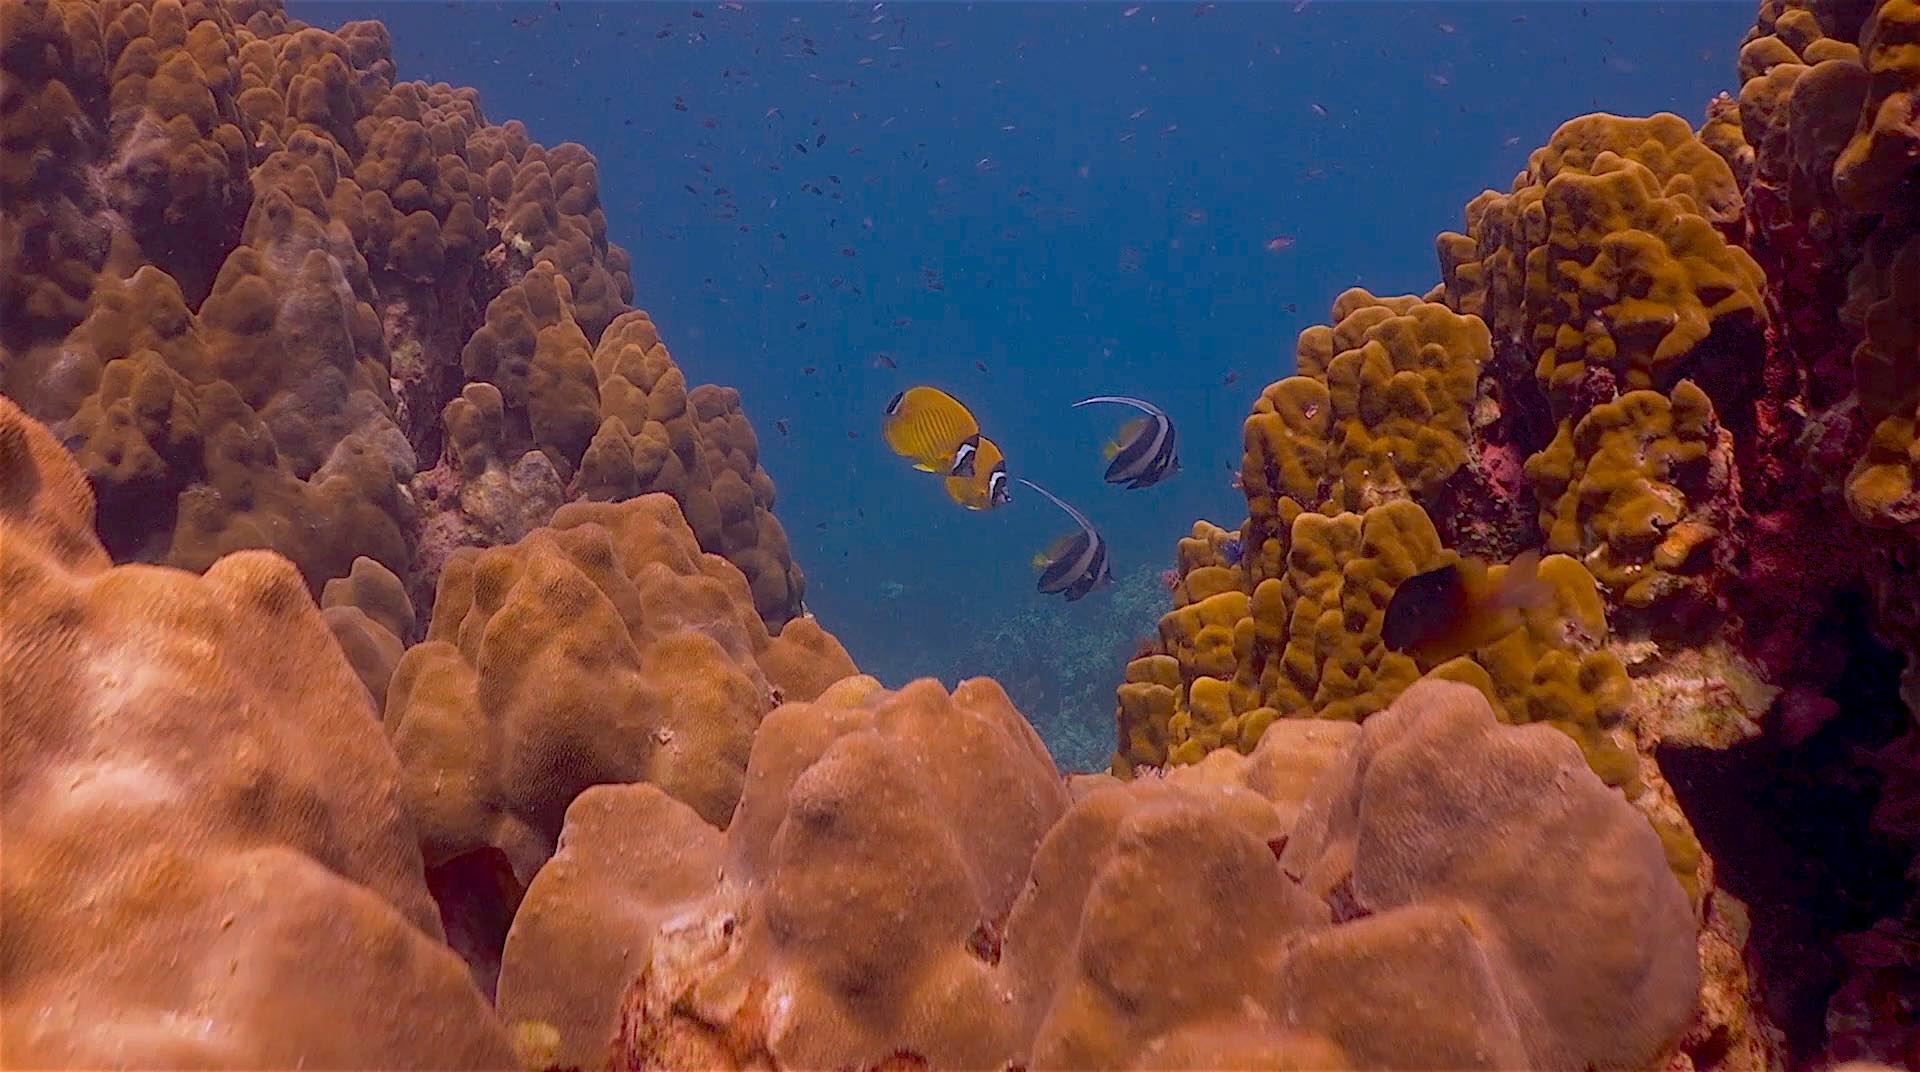 www.thefunkyturtle.com japanese gardens dive site koh tao corals